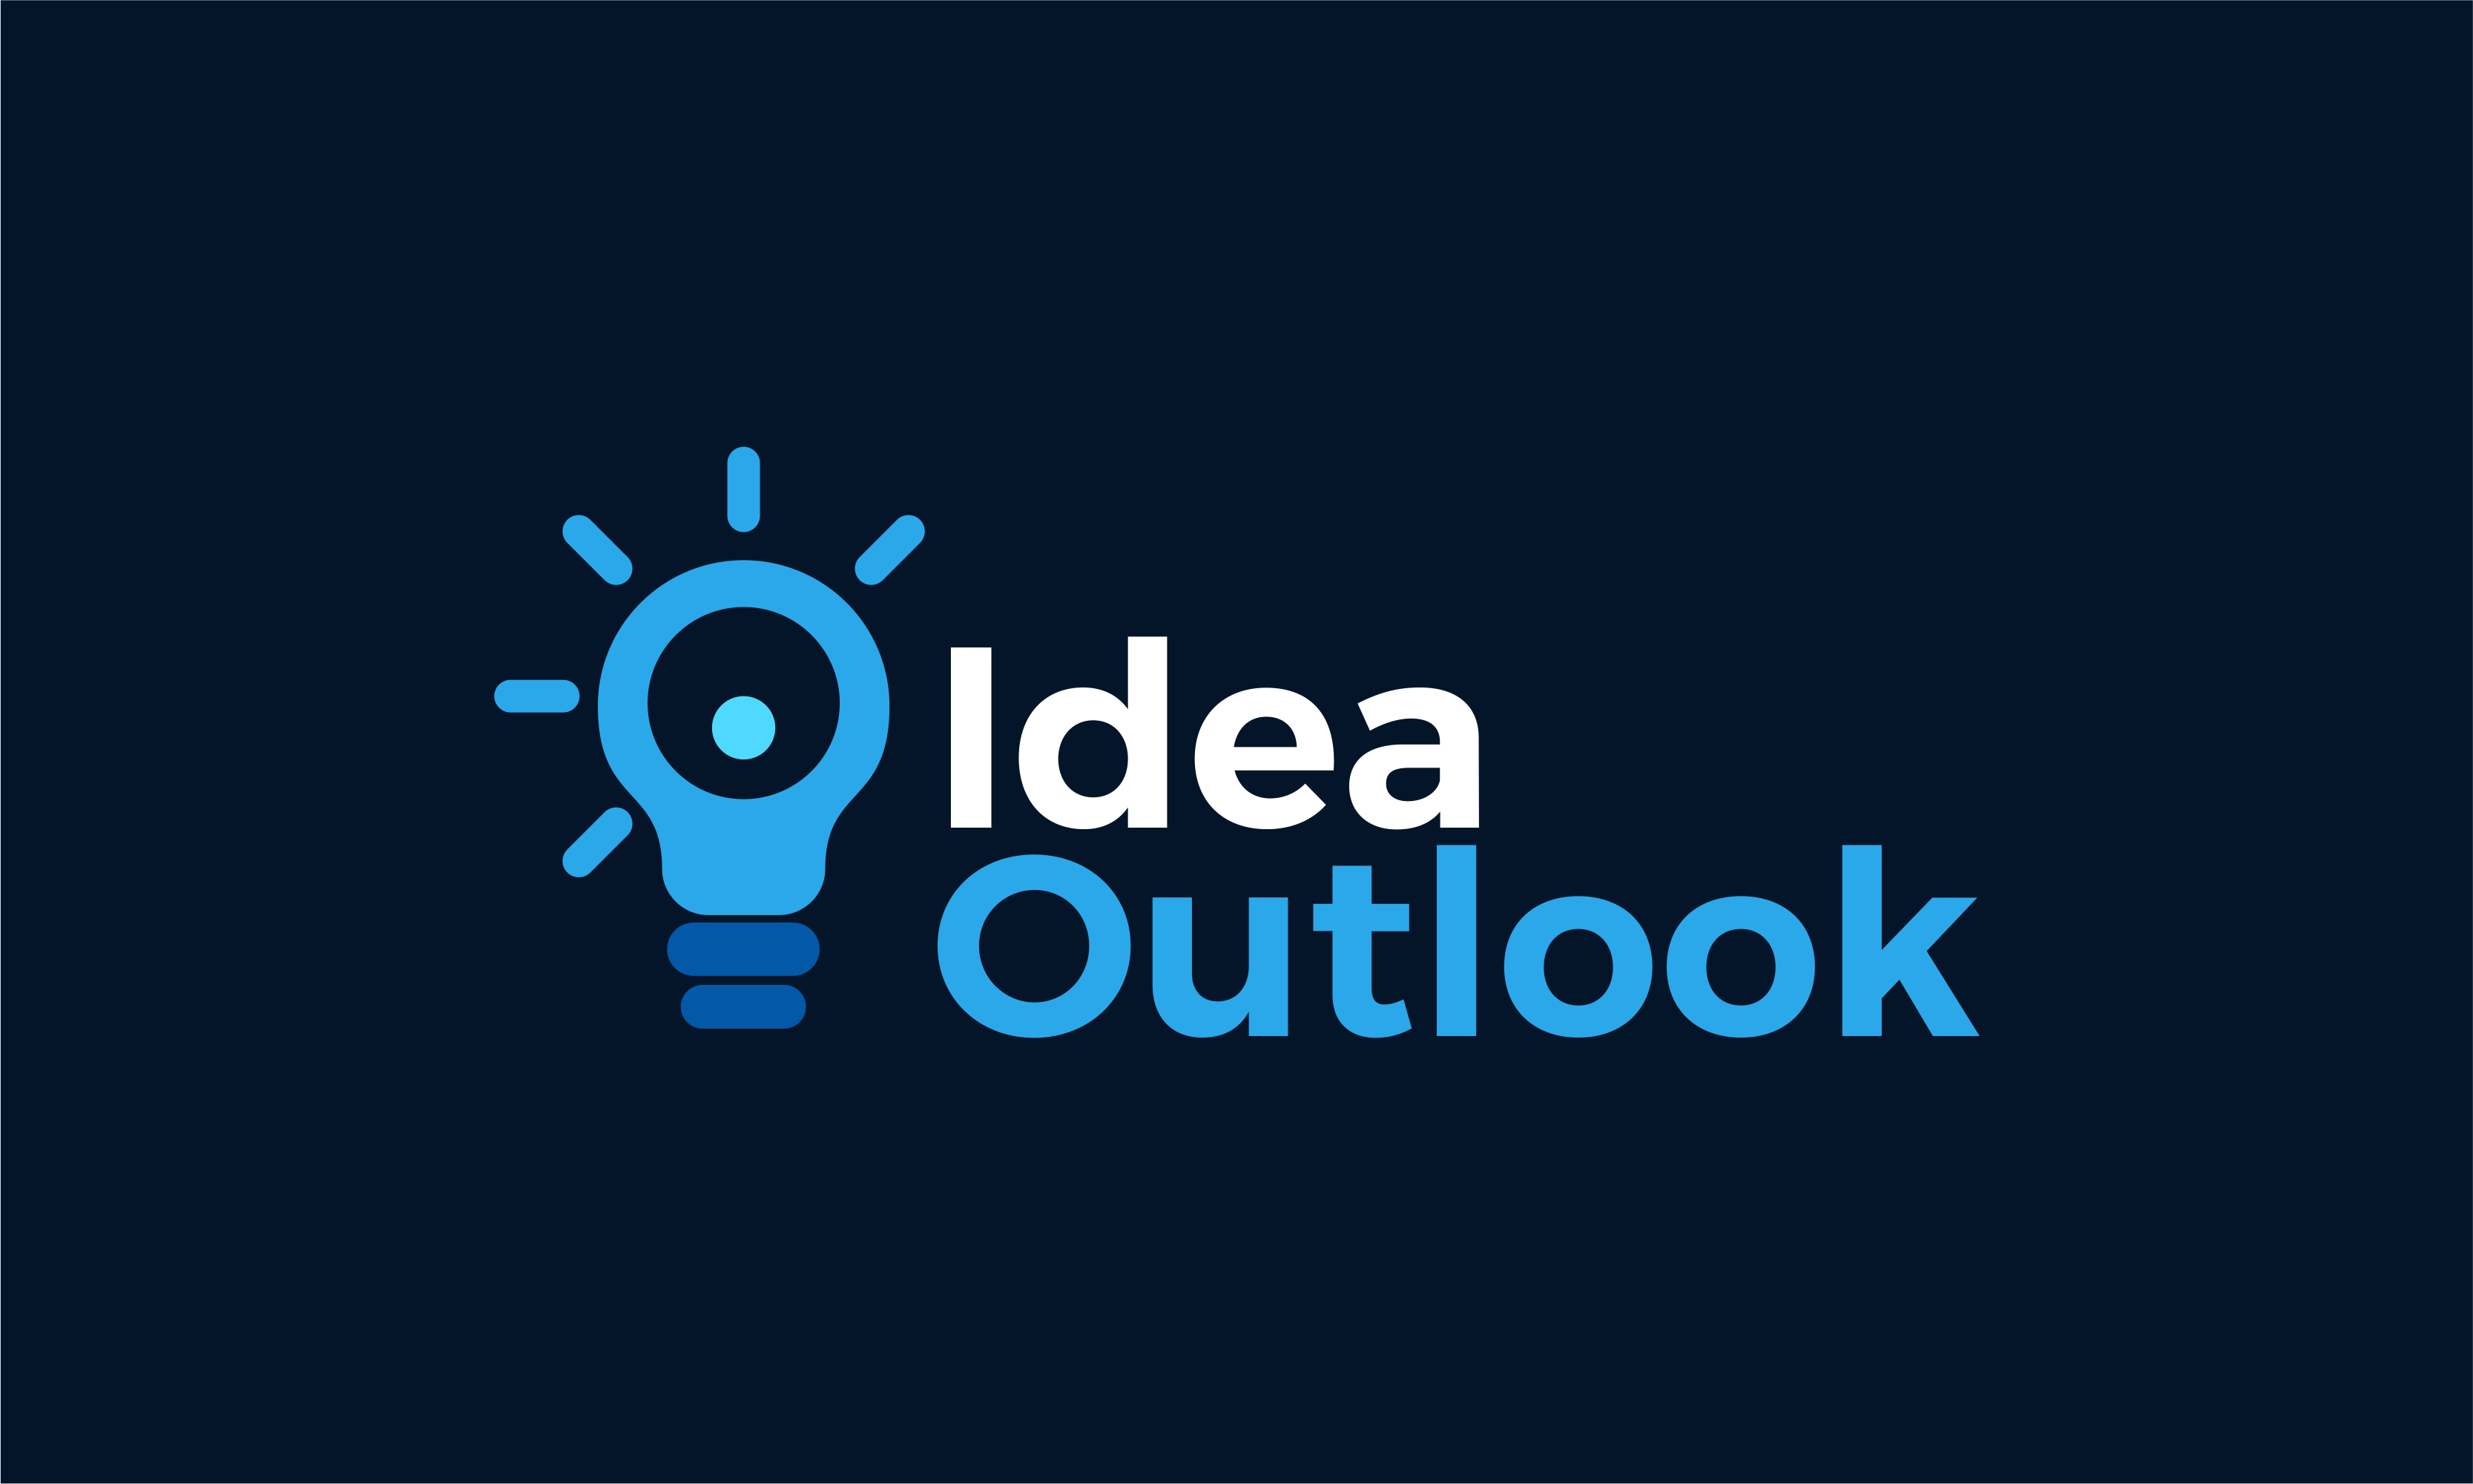 Ideaoutlook